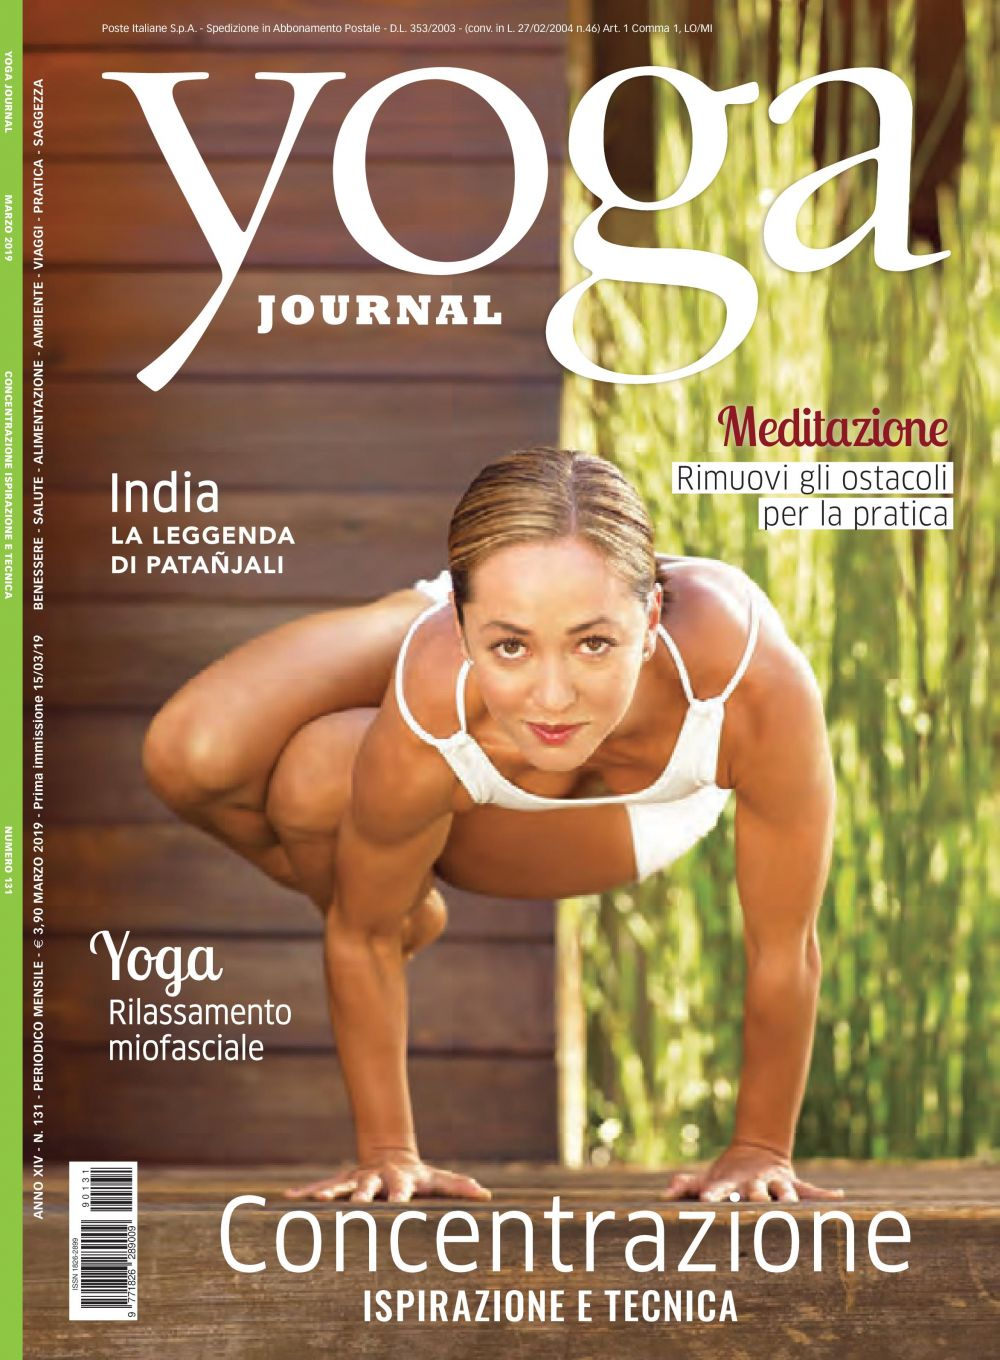 Yoga Journal Marzo n.131